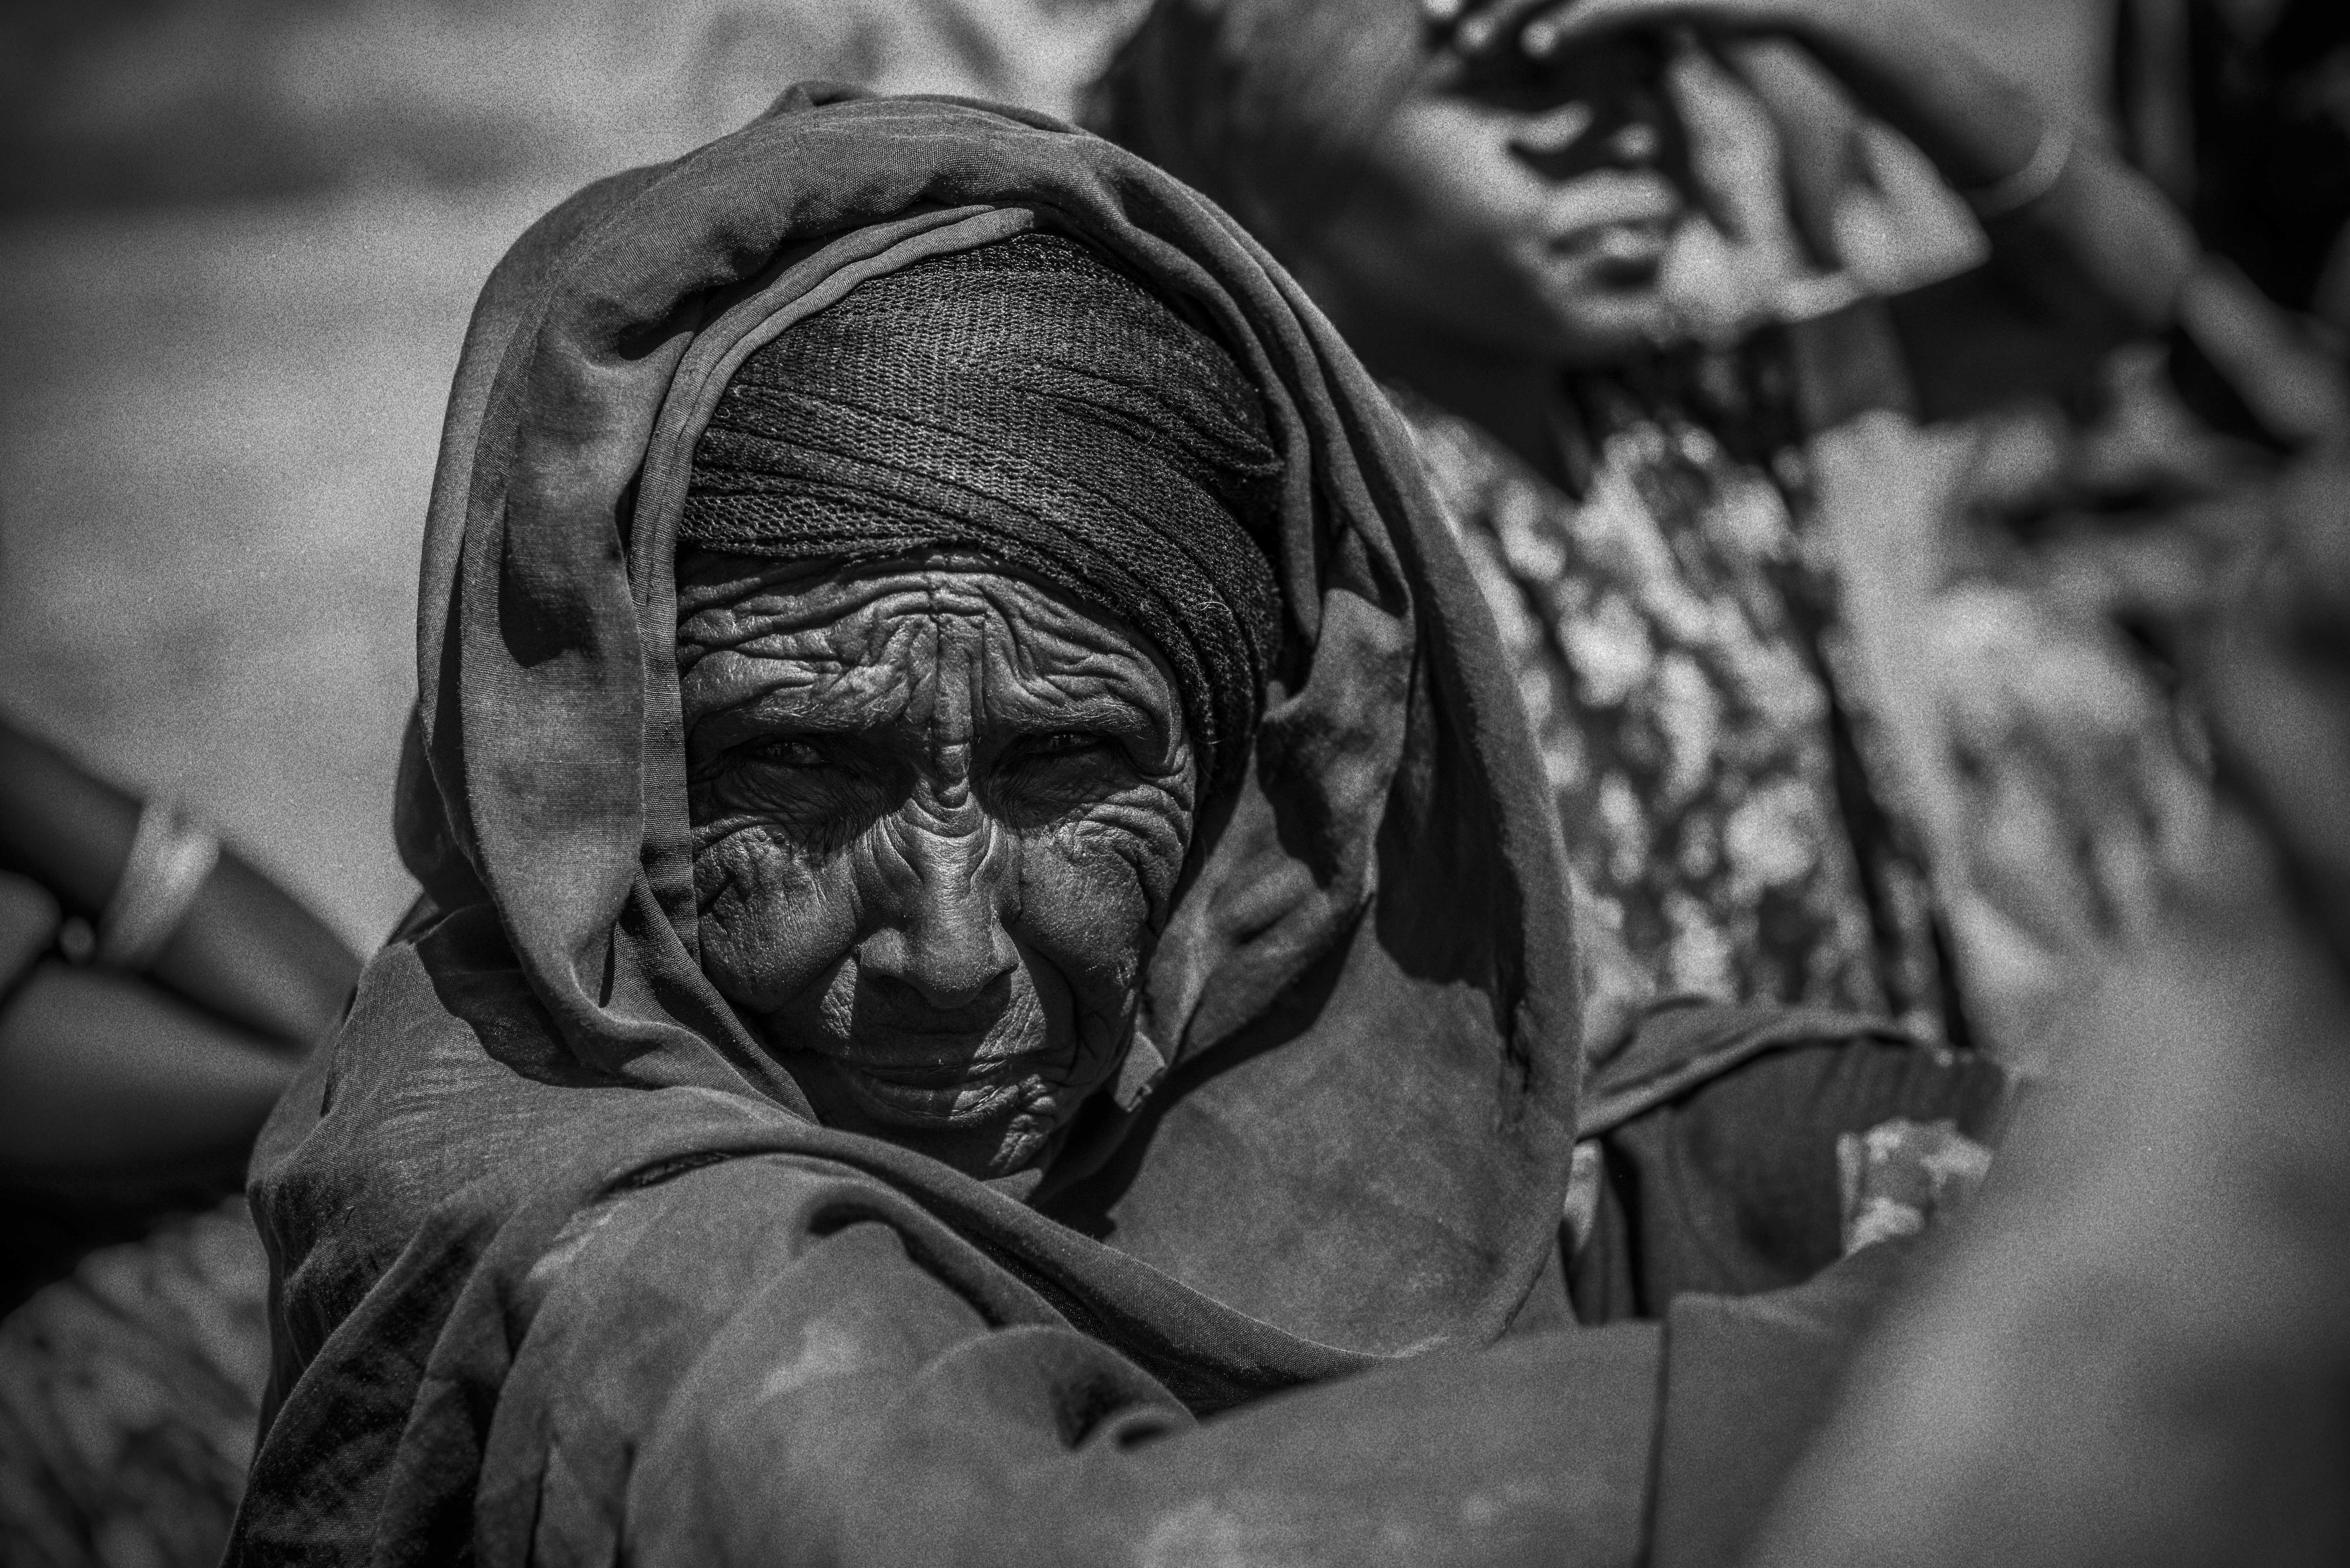 An elderly woman is one of more than 1 million Somalis internally displaced due to conflict and drought, according to the United Nations. Photo by Sebastian Rich for UNICEF